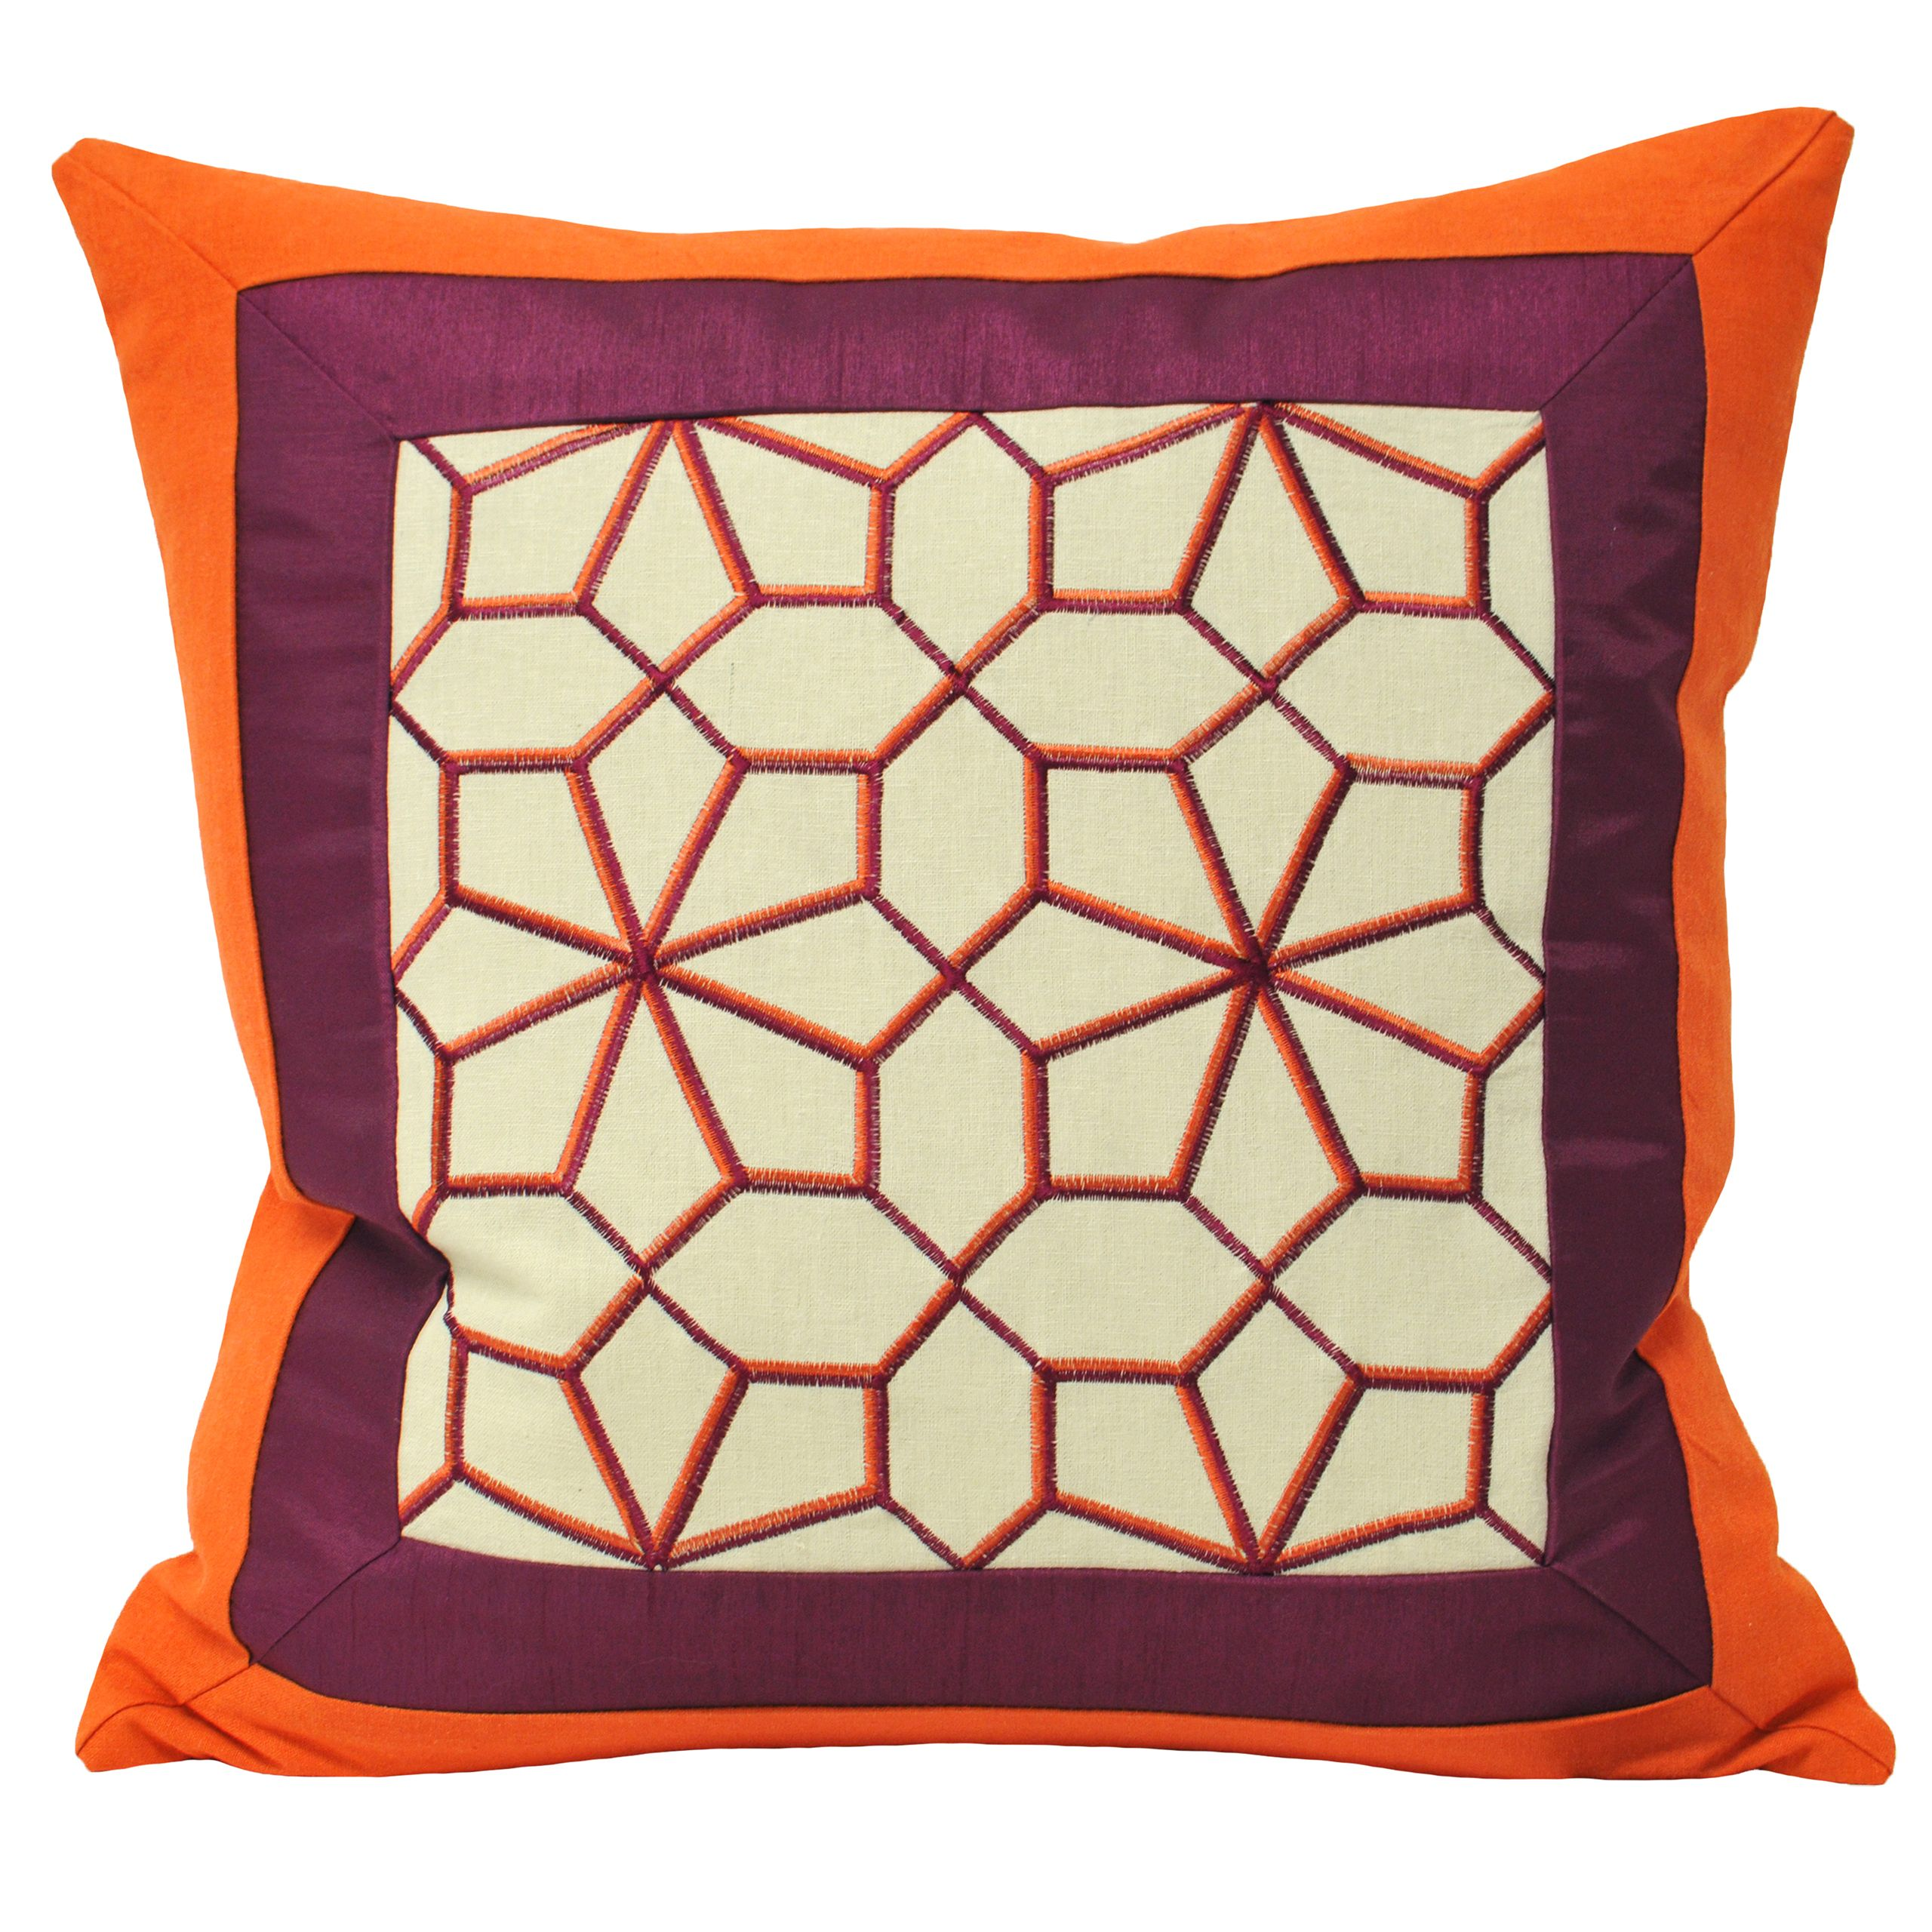 Oblix X Polyester Filled Cushion